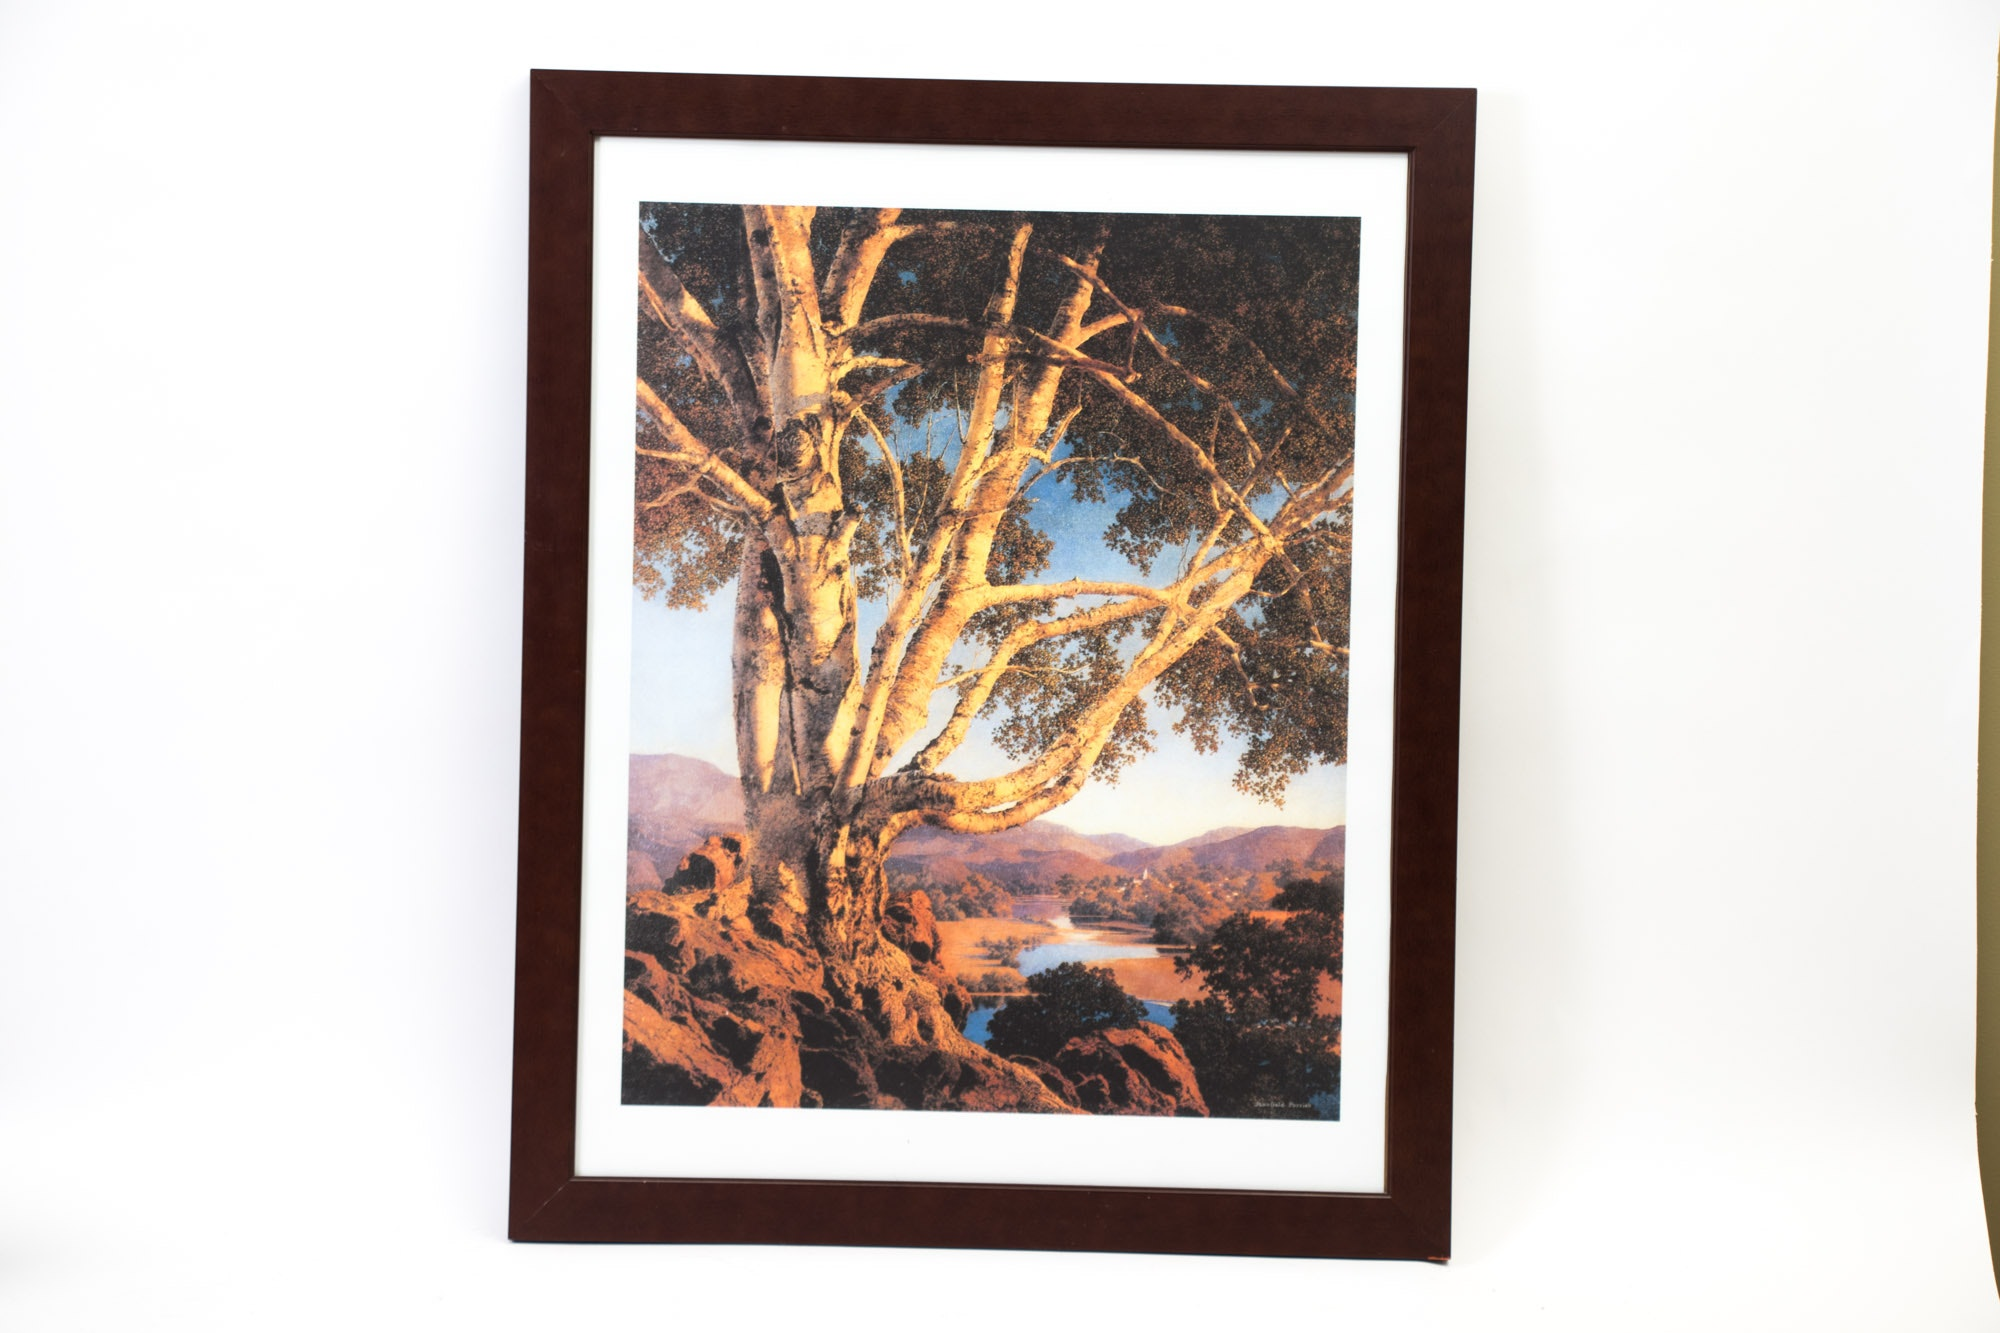 Framed Vintage Maxfield Parrish Lithographic Poster